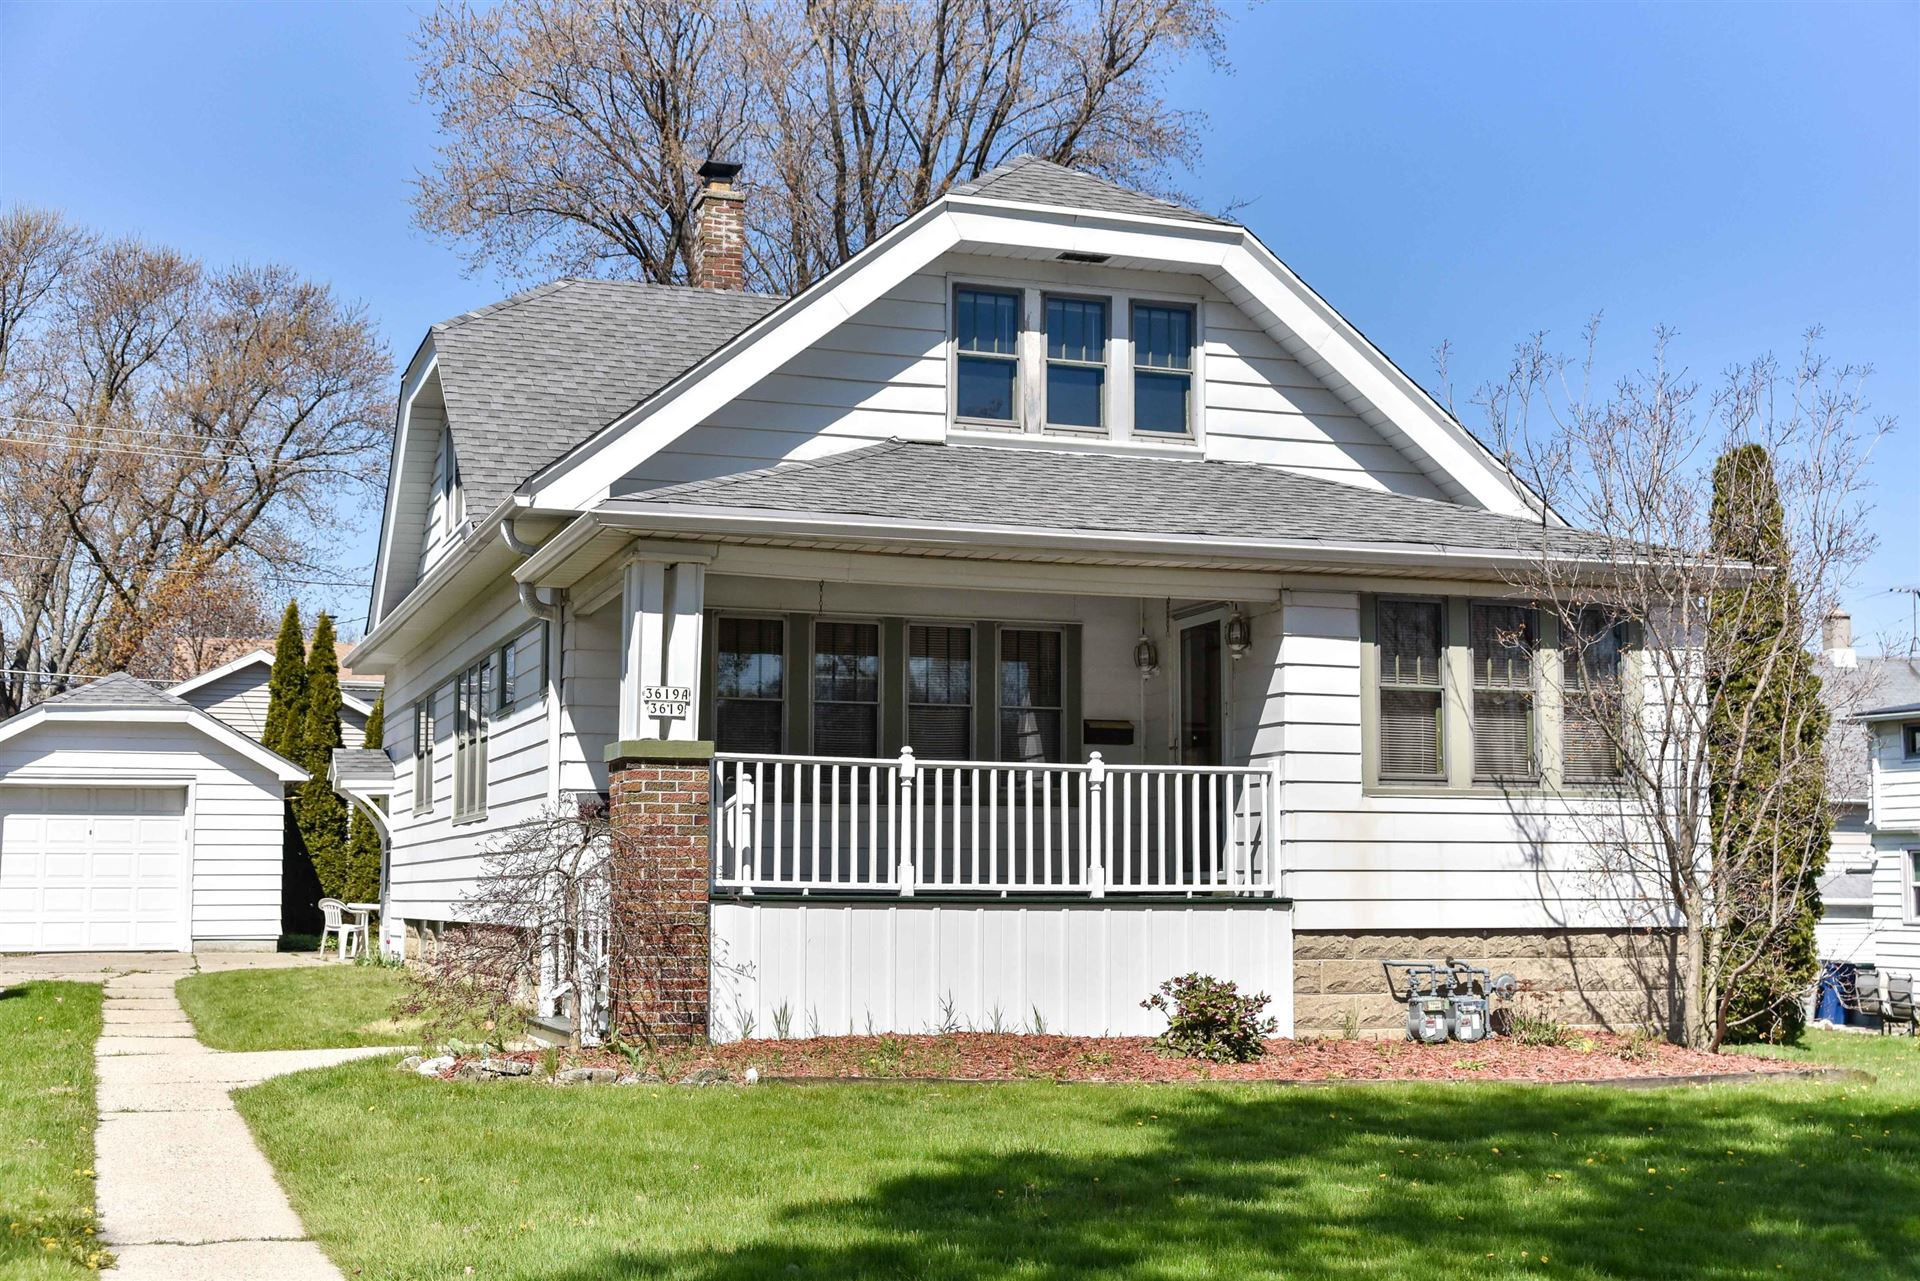 3619 S Chase Ave #3619A, Milwaukee, WI 53207 - #: 1688601